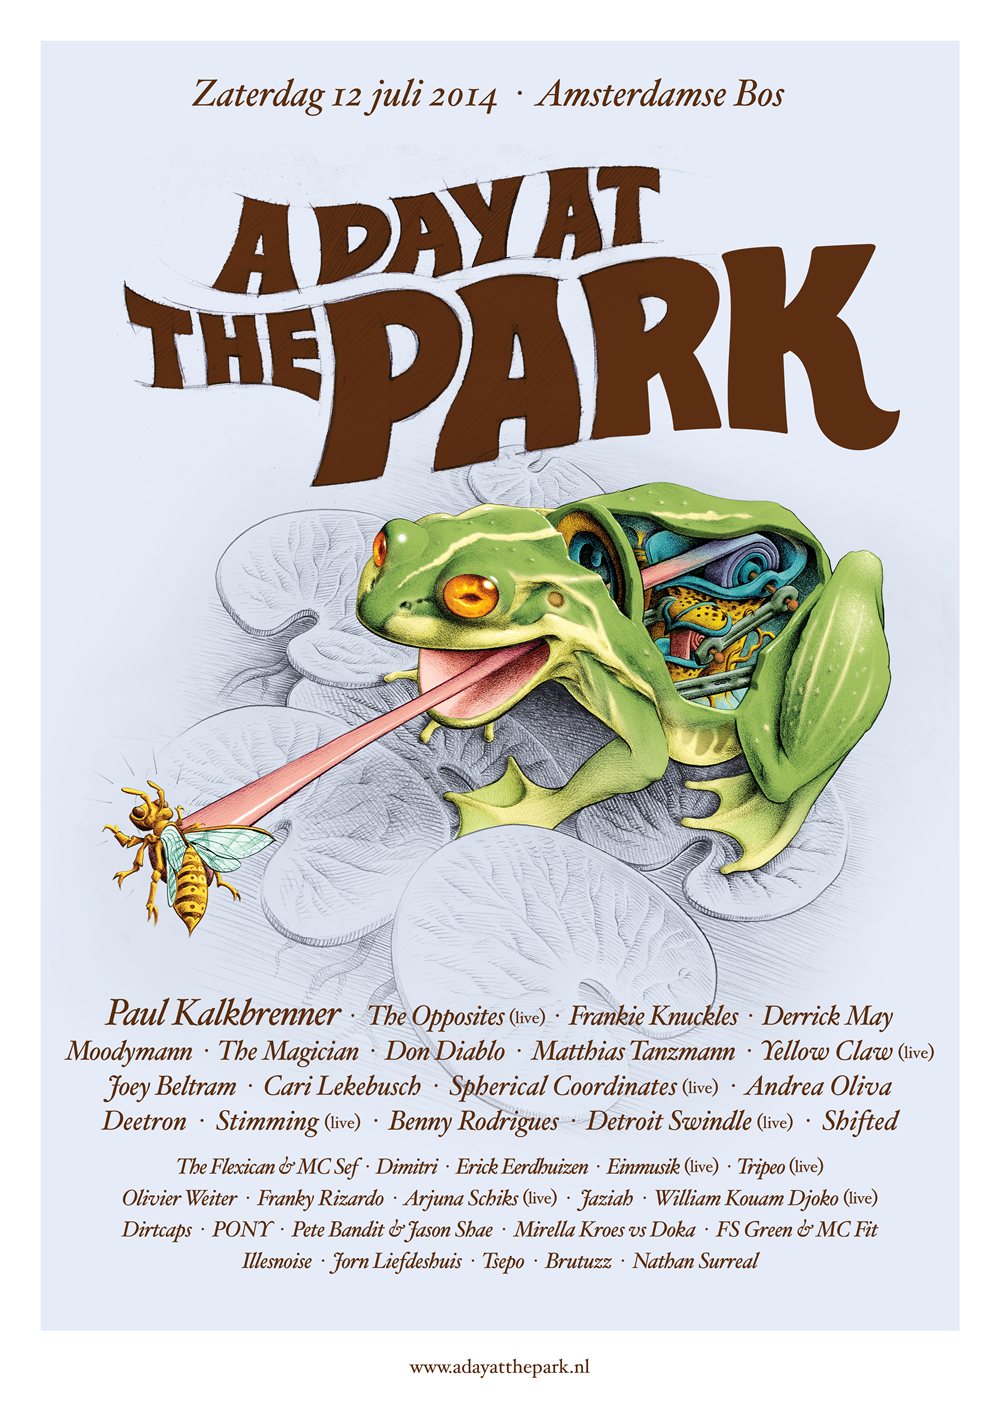 A Day At The Park 2012 line-up